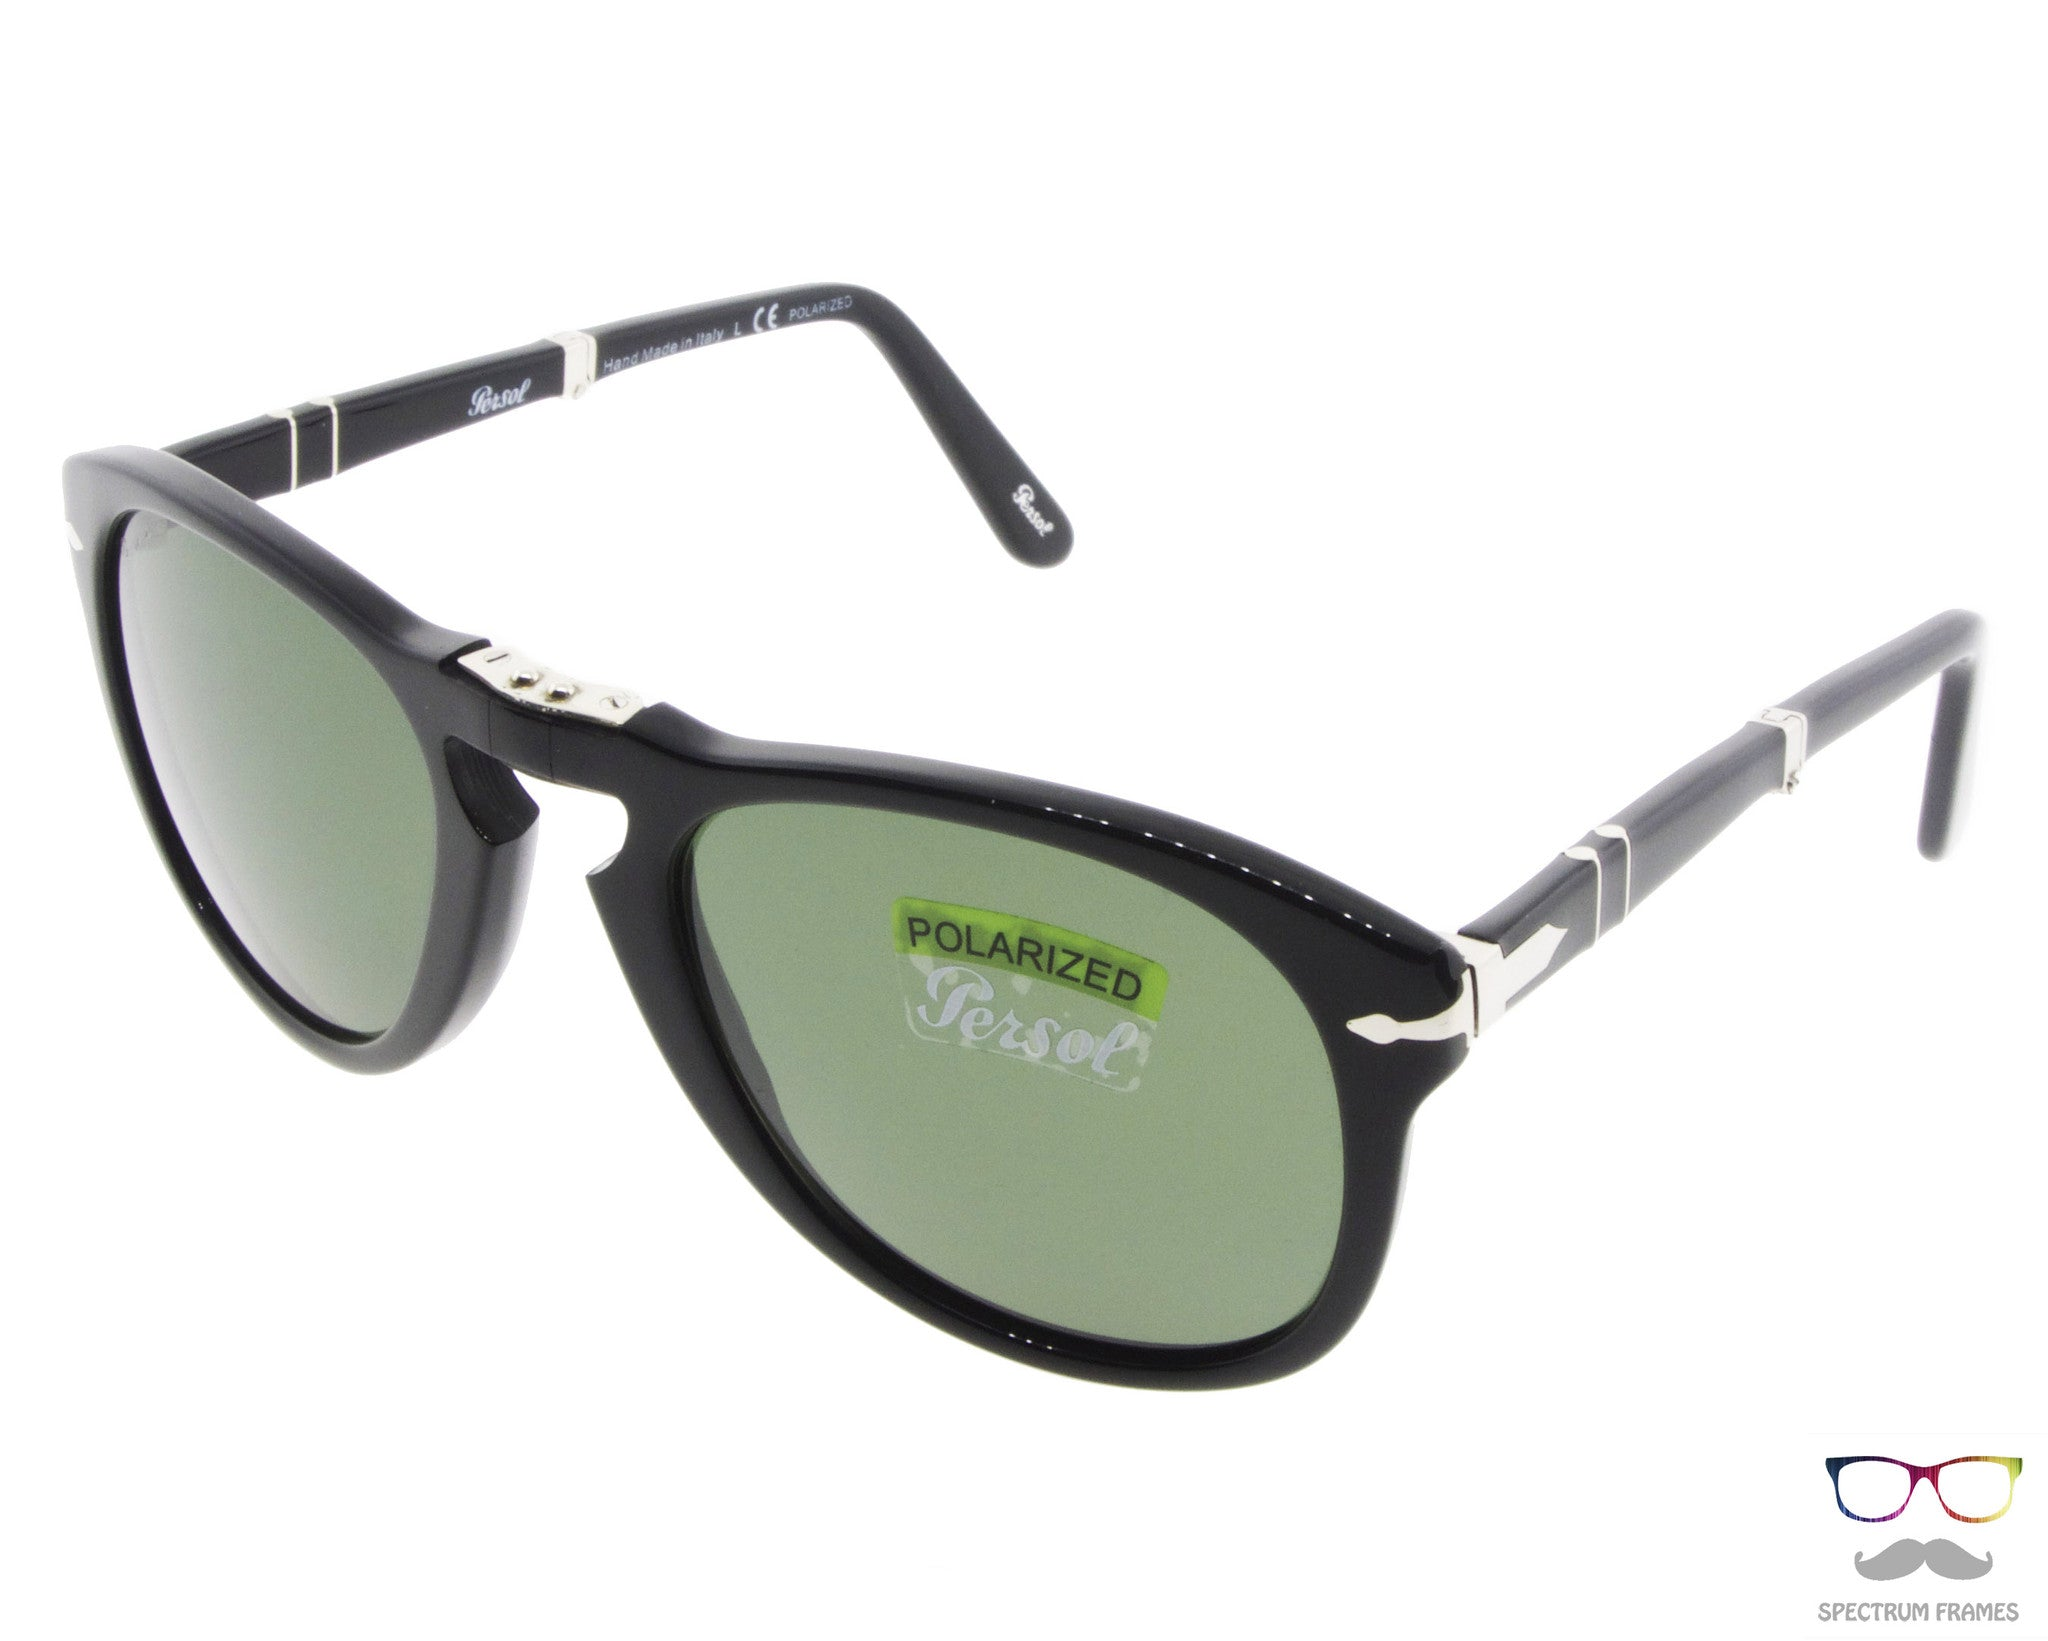 182940f2e1 ... Persol Folding Sunglasses 714 95 58 Black with Green Polarized Lenses  Size 52 ...